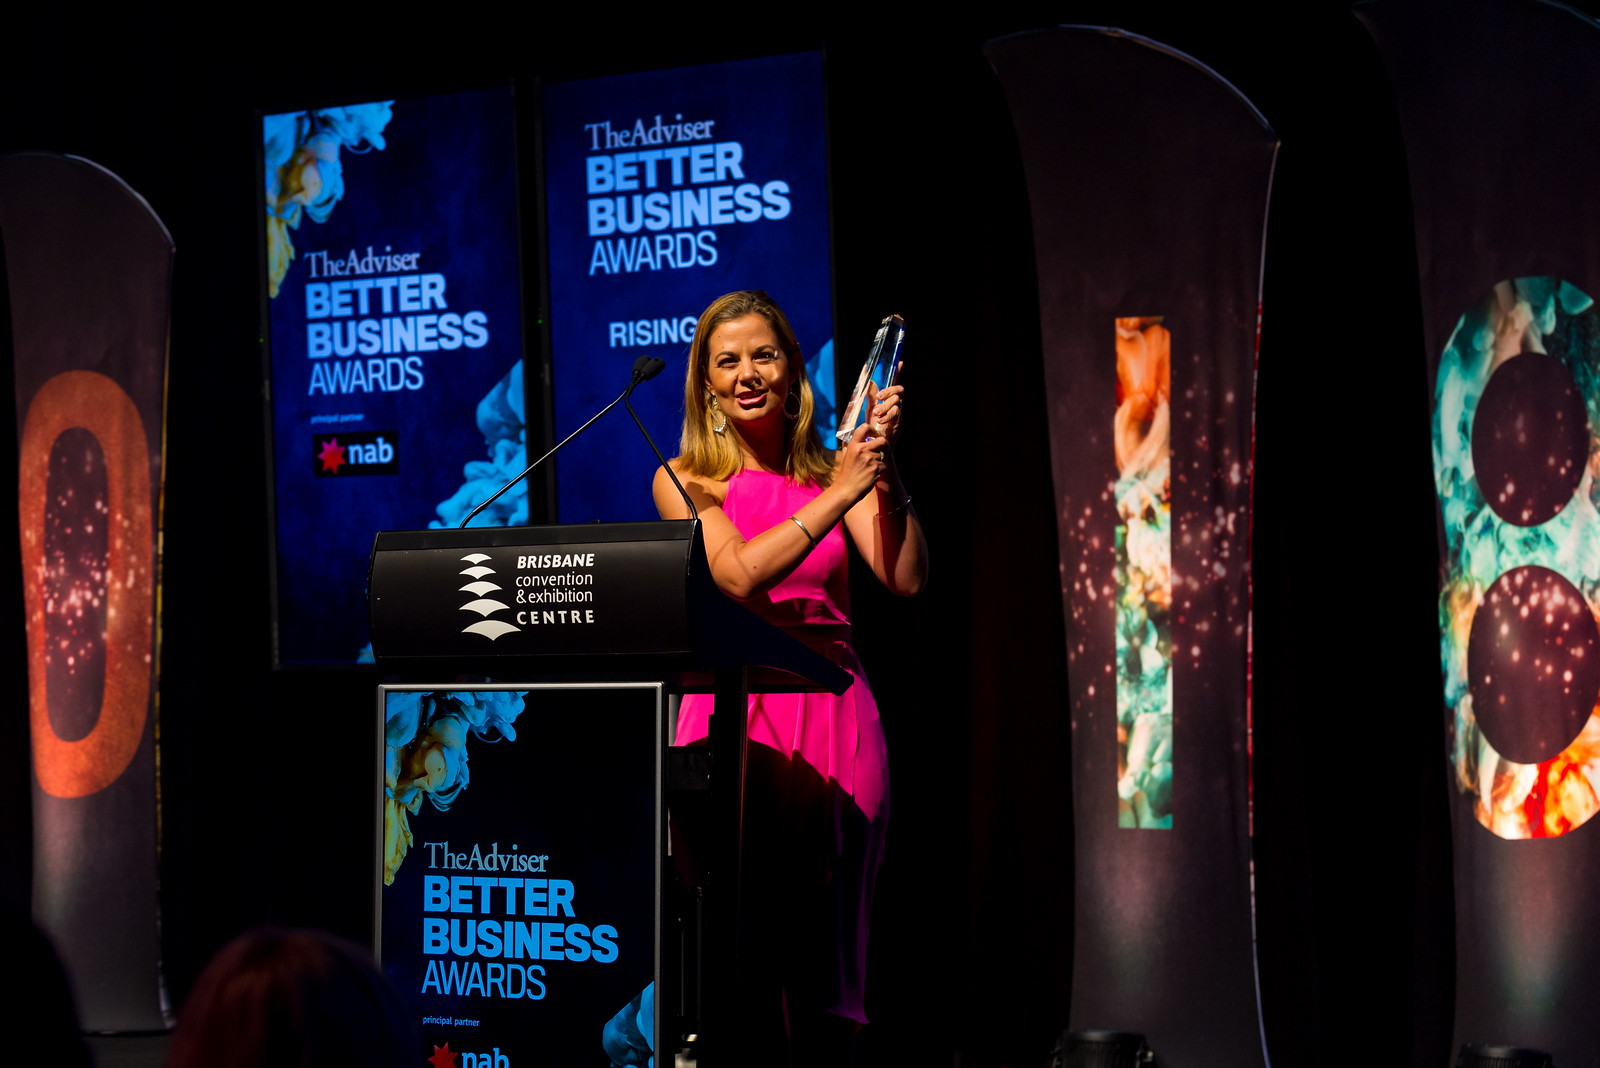 better-business-awards